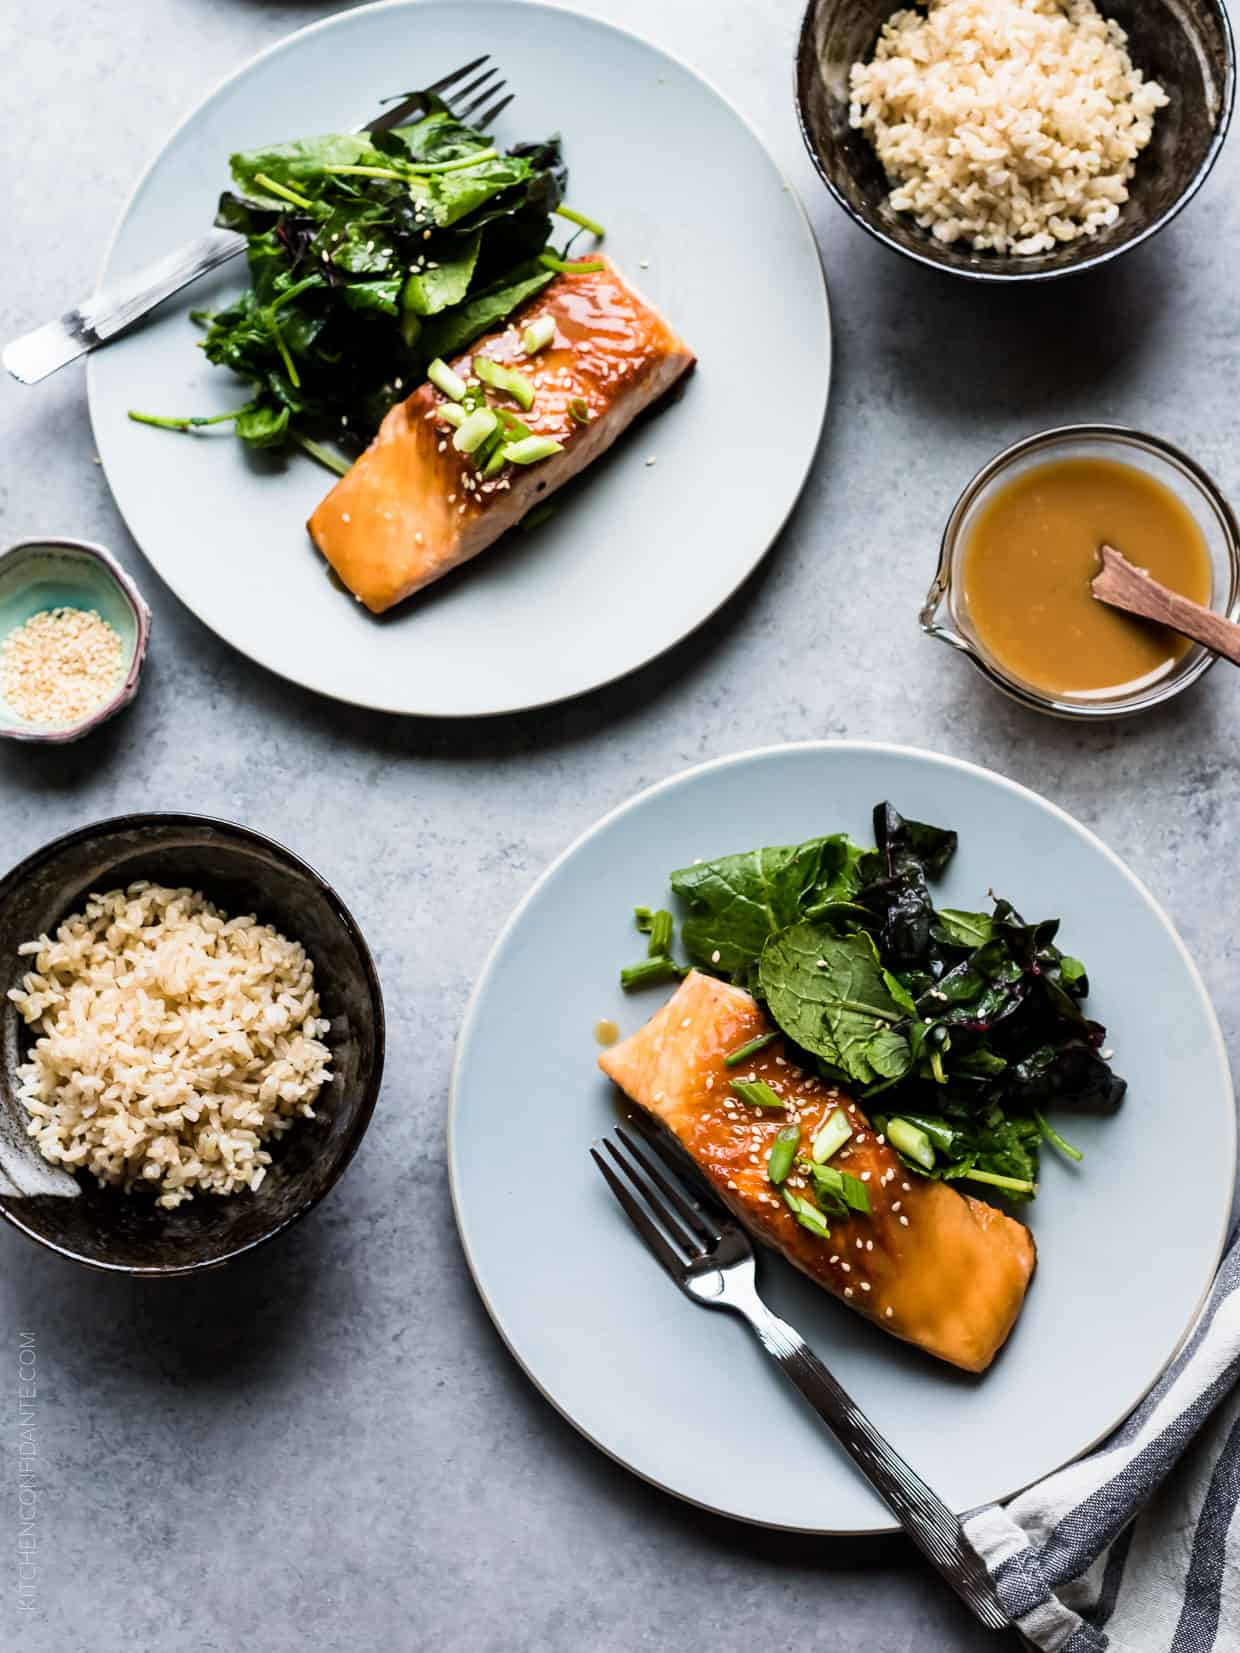 Two white plates filled with Miso Maple Glazed Salmon and wilted green salads served alongside bowls of rice.